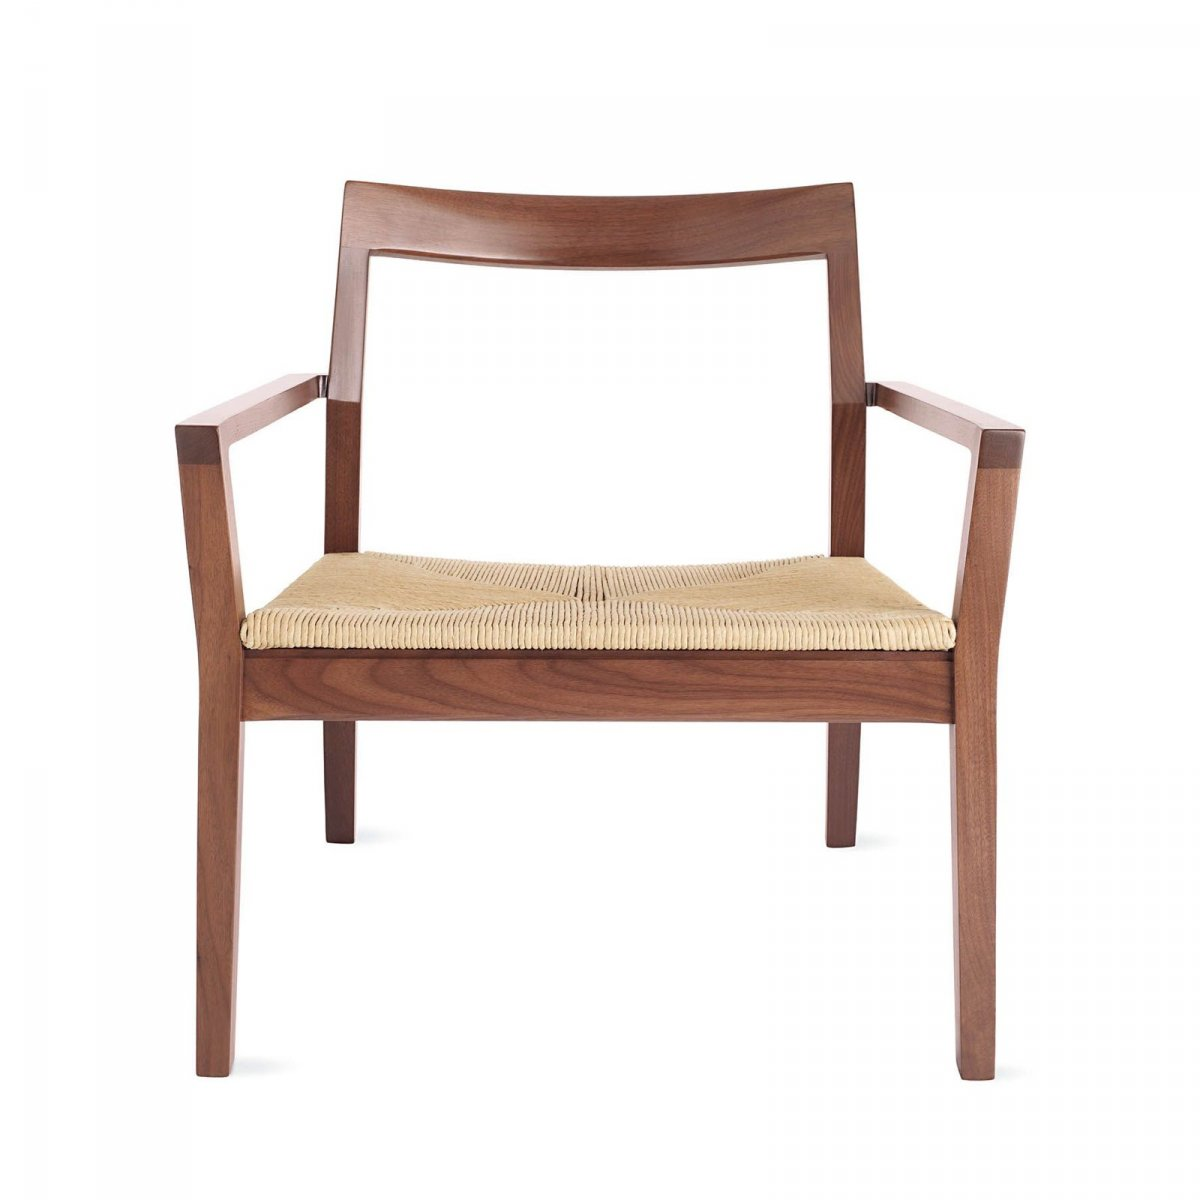 Krusin Lounge Arm Chair, walnut, front view.